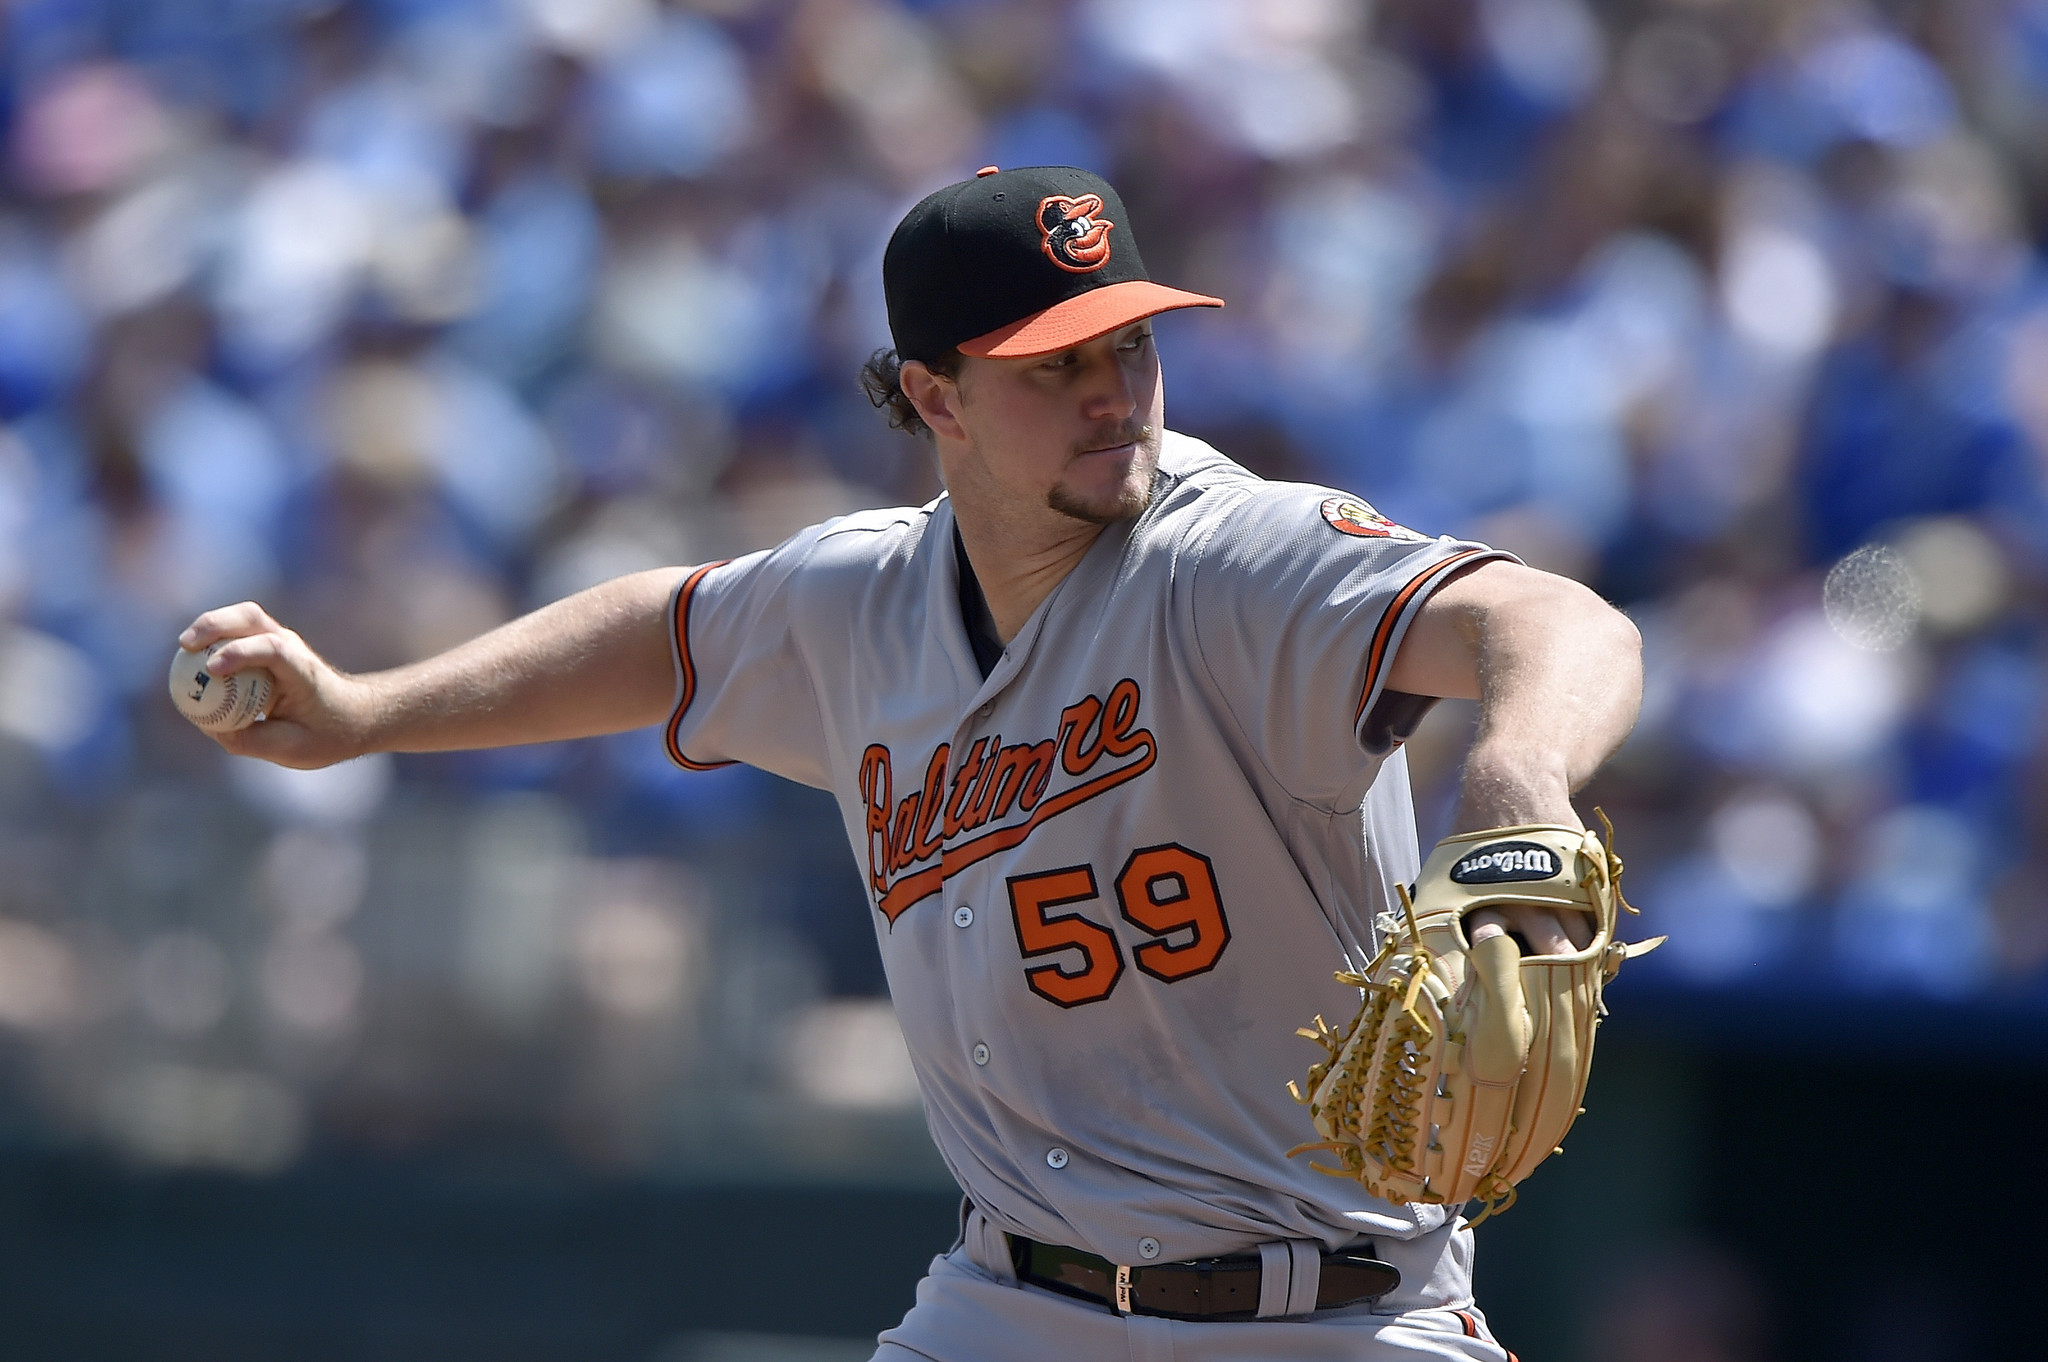 Bal-orioles-on-deck-what-to-watch-friday-vs-white-sox-20160429